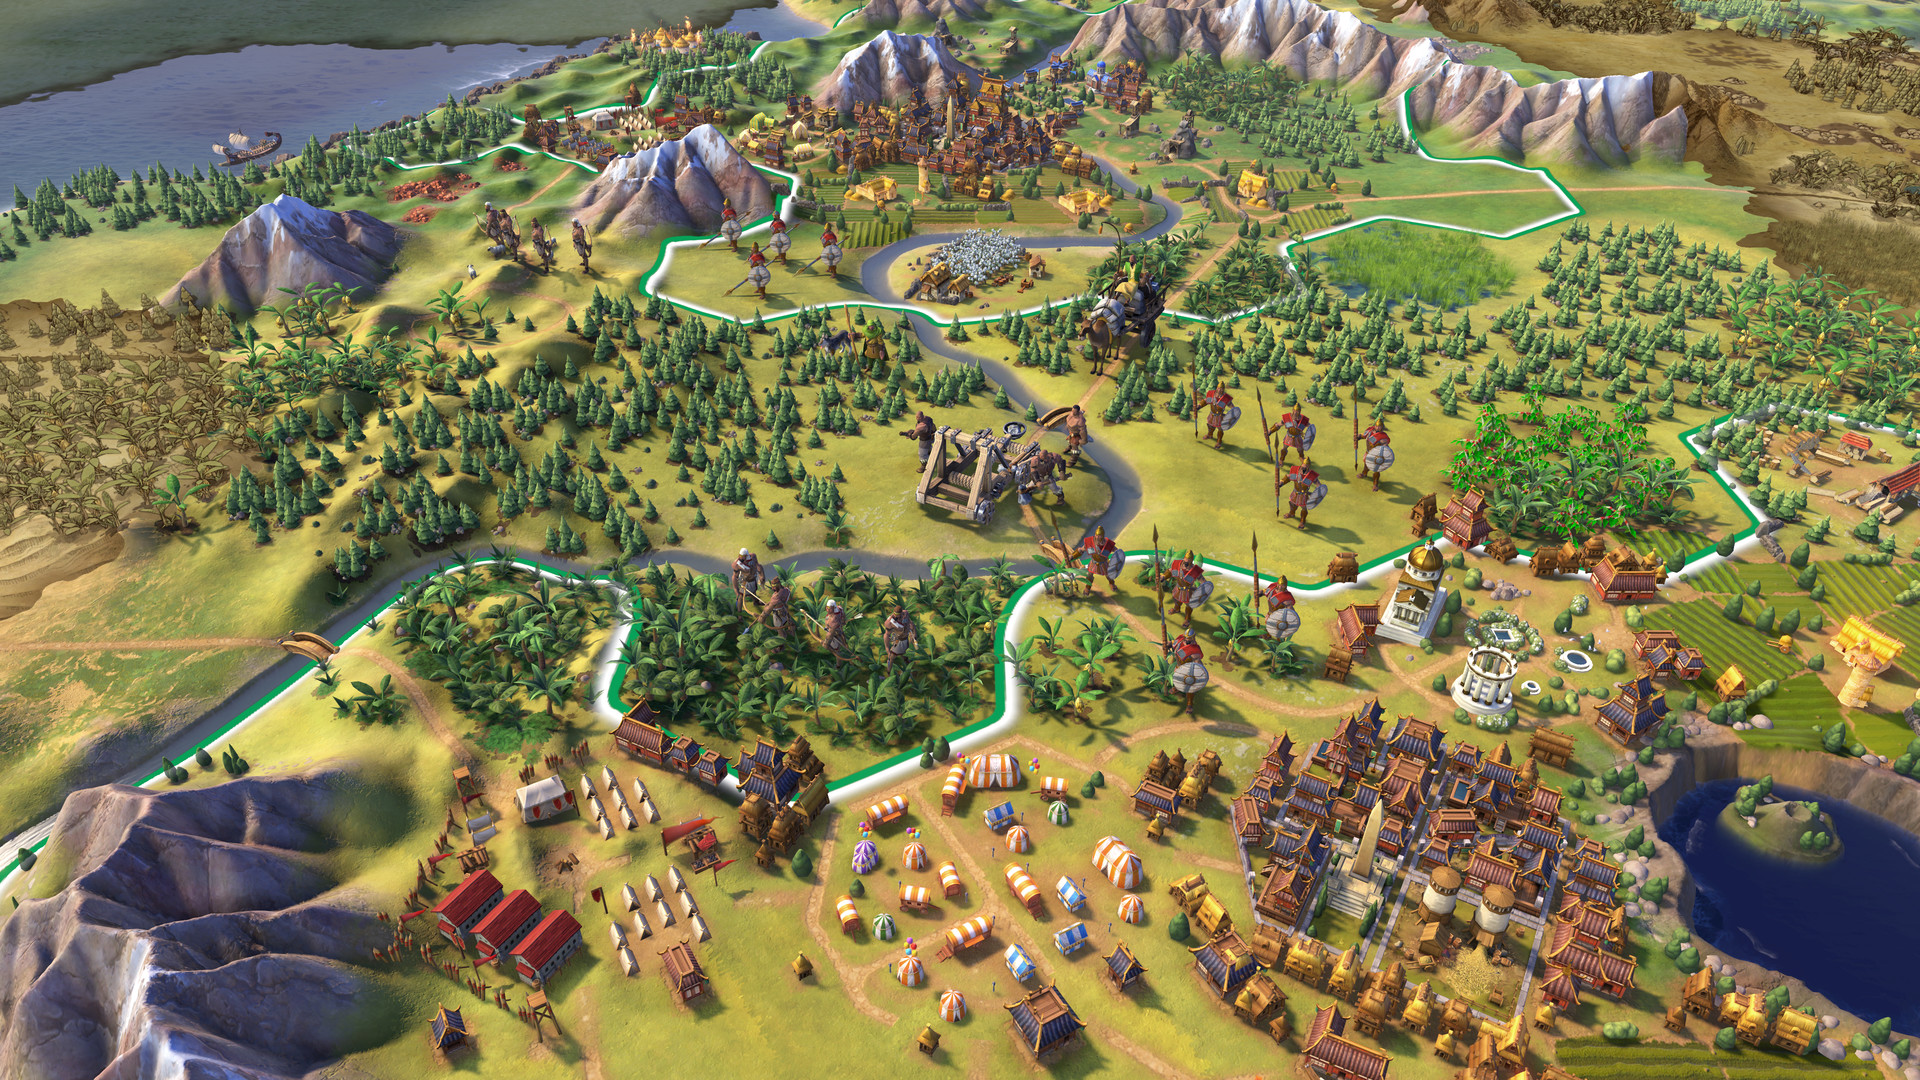 Claim Sid Meier's Civilization VI for free